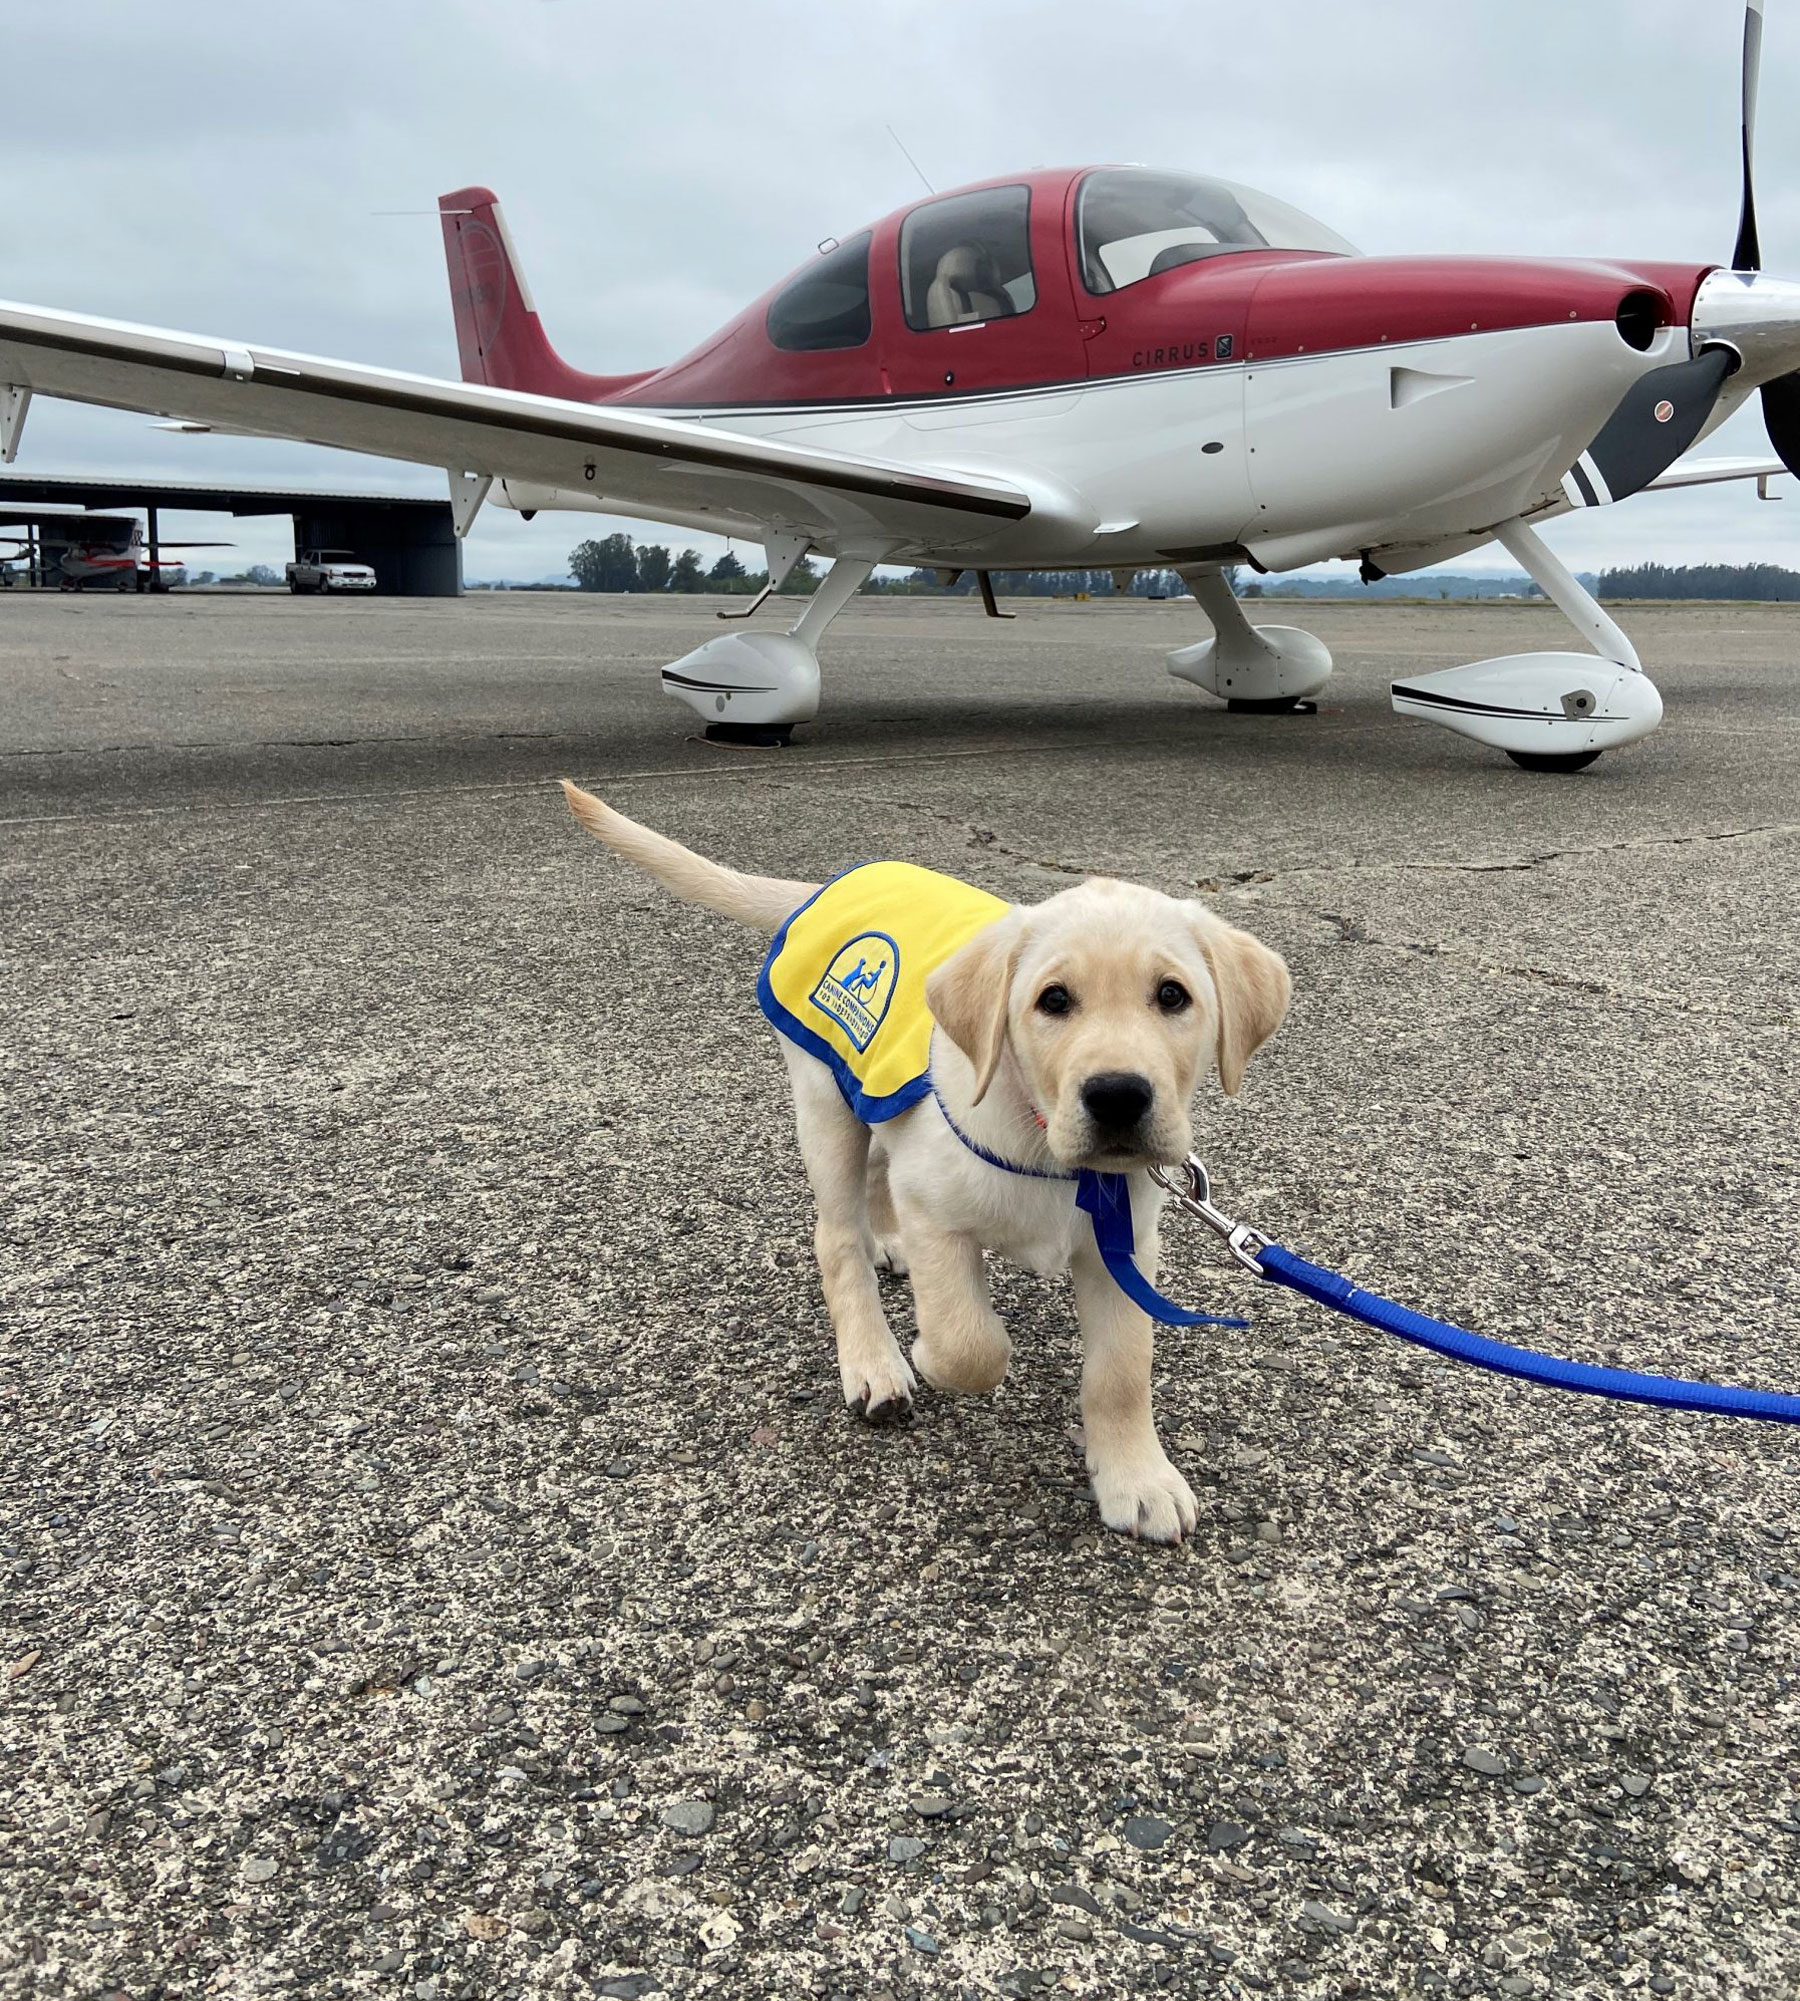 golden retriever service puppy in training and a parked airplane